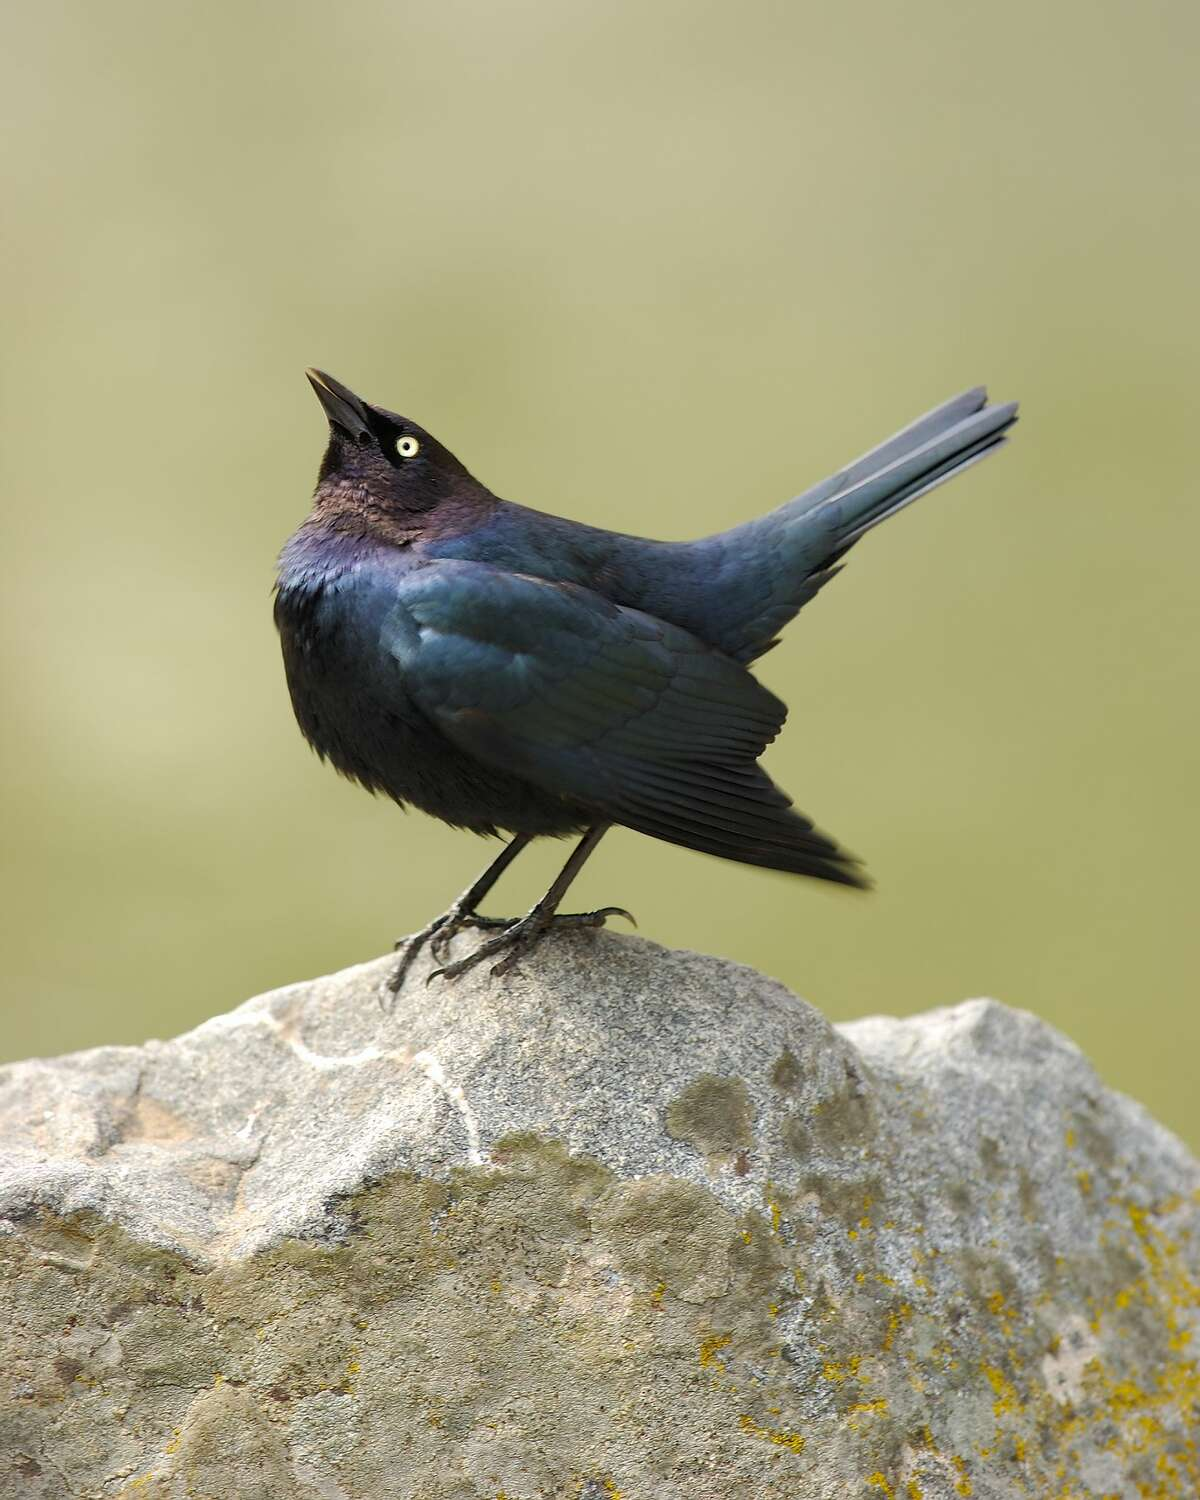 A male Brewer's Blackbird, the same species that has been allegedly attacking people.